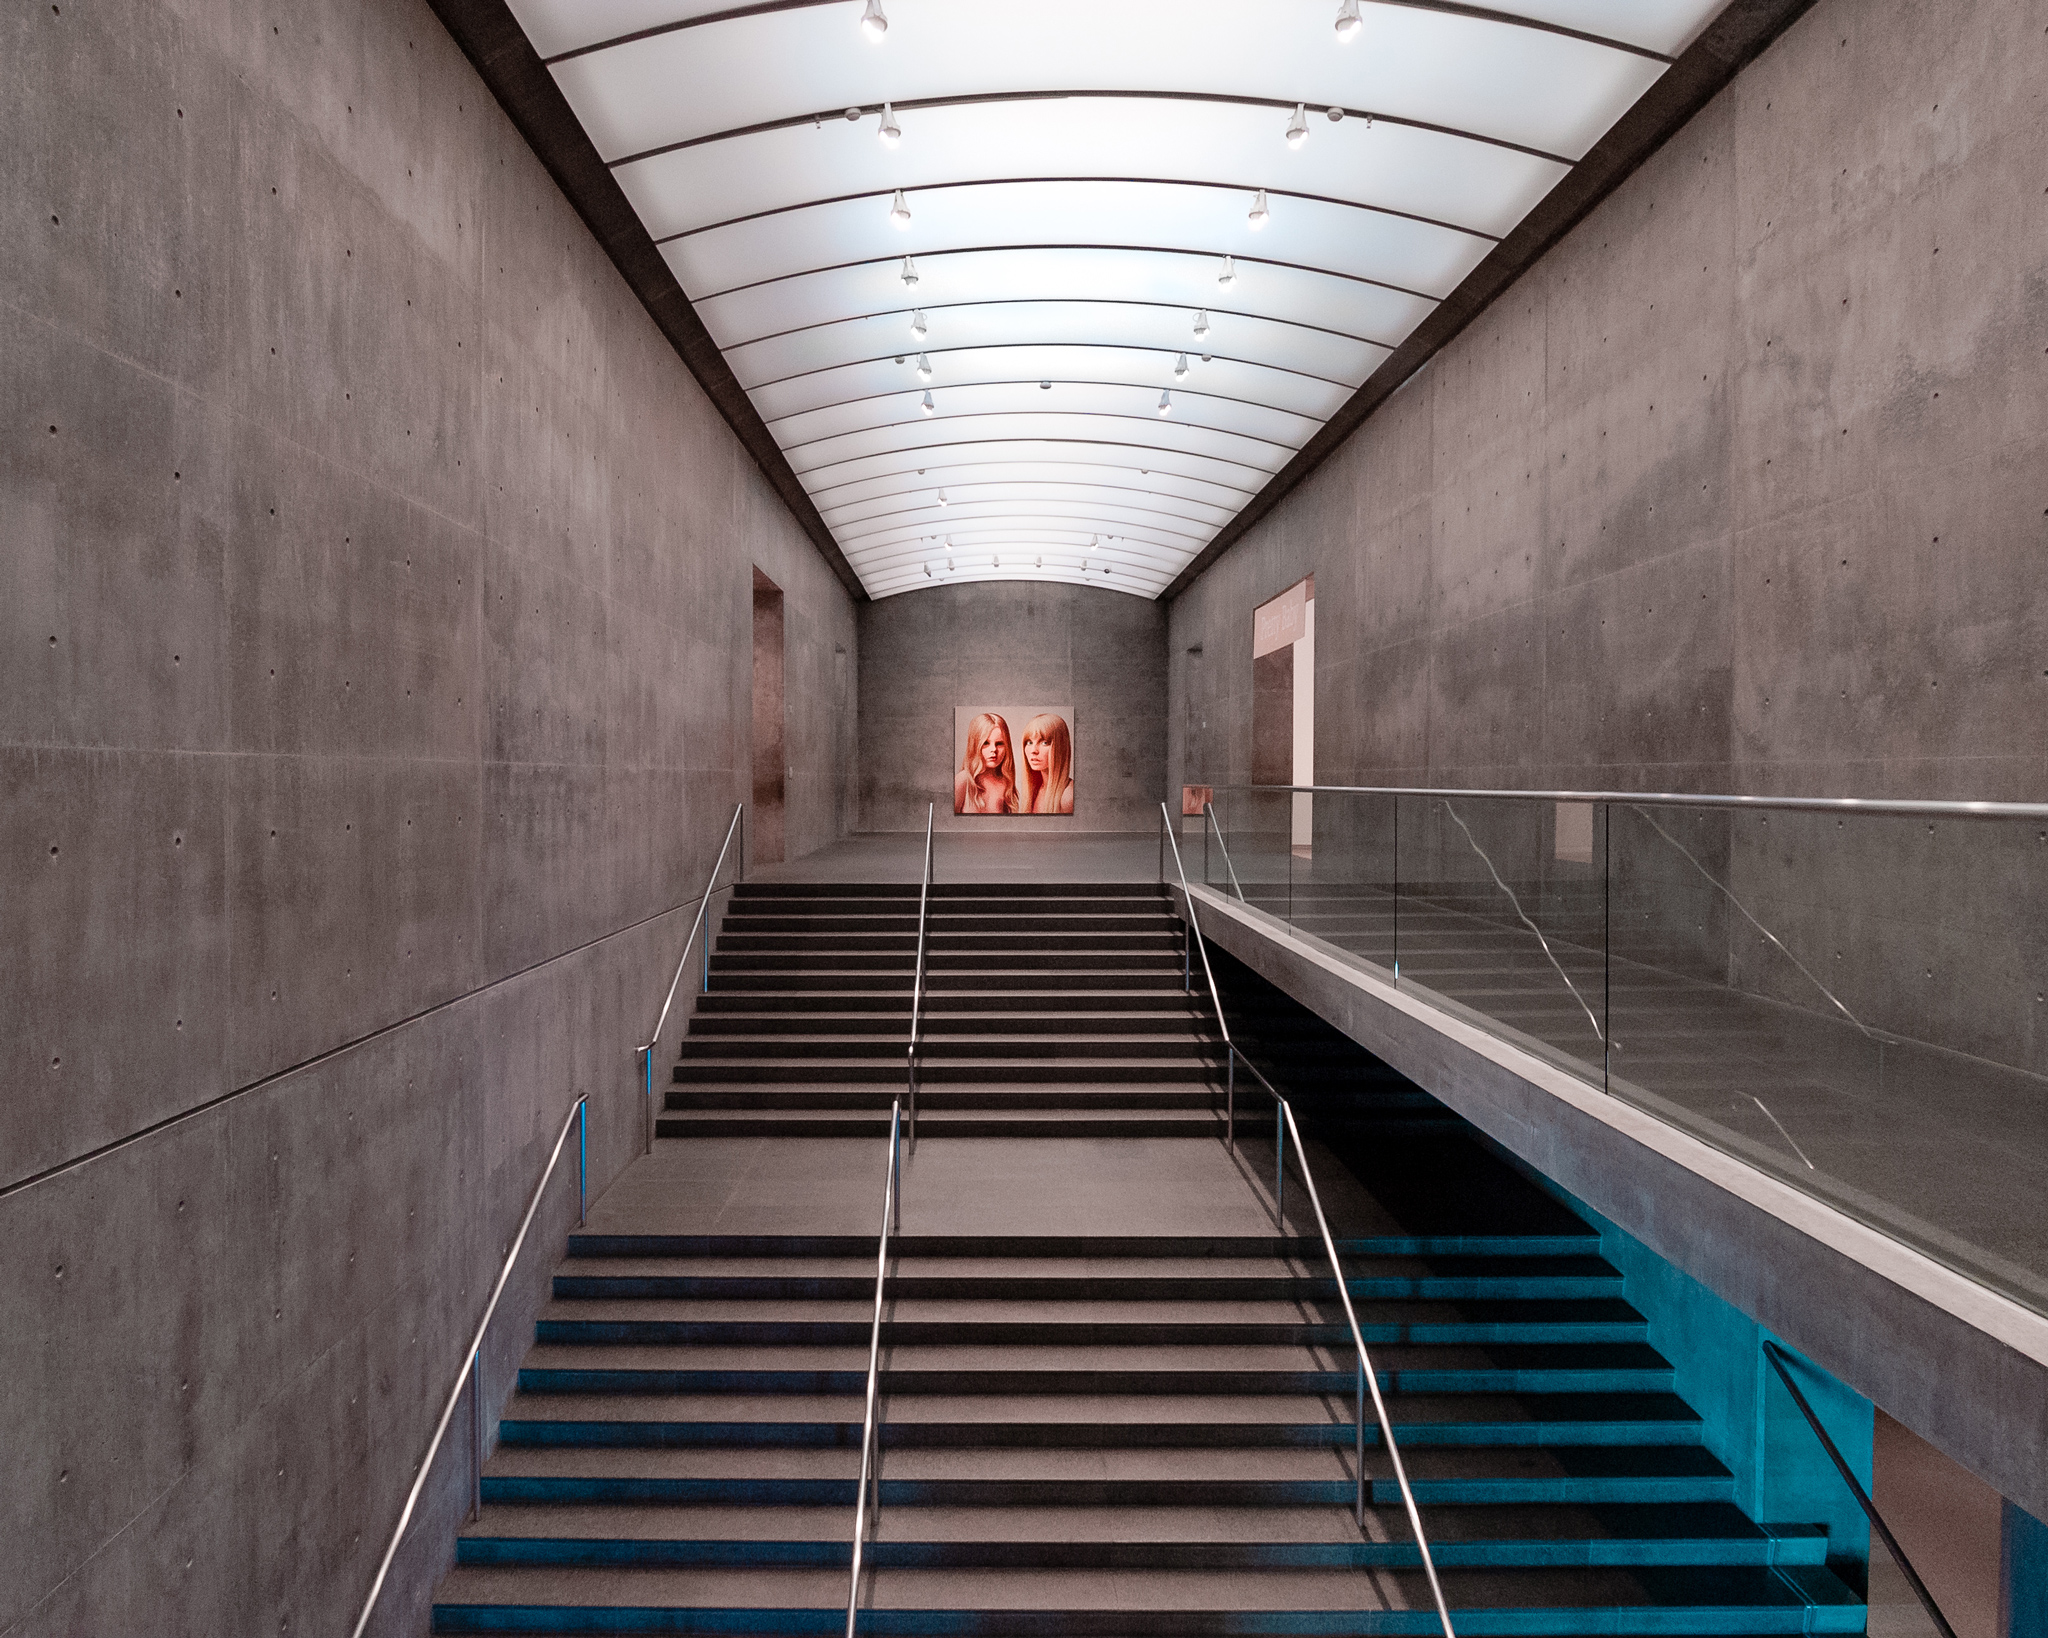 Main staircase to special exhibition hall at the Modern Art Museum of Fort Worth.